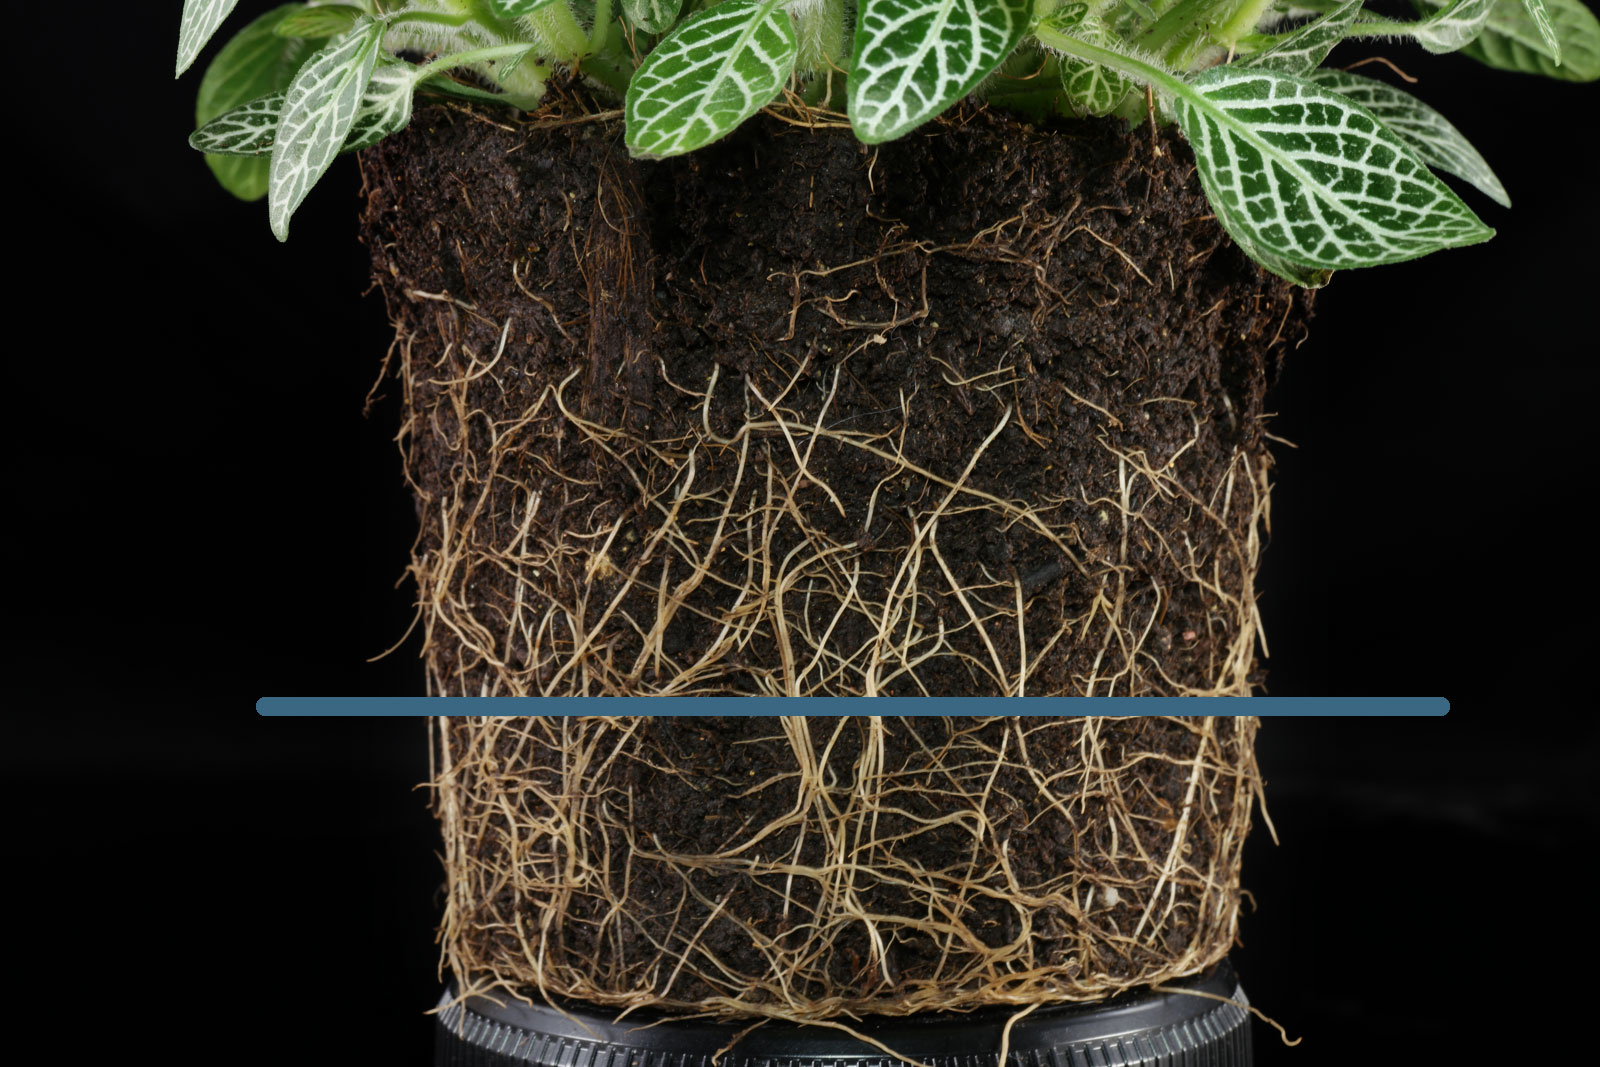 Fittonia roots